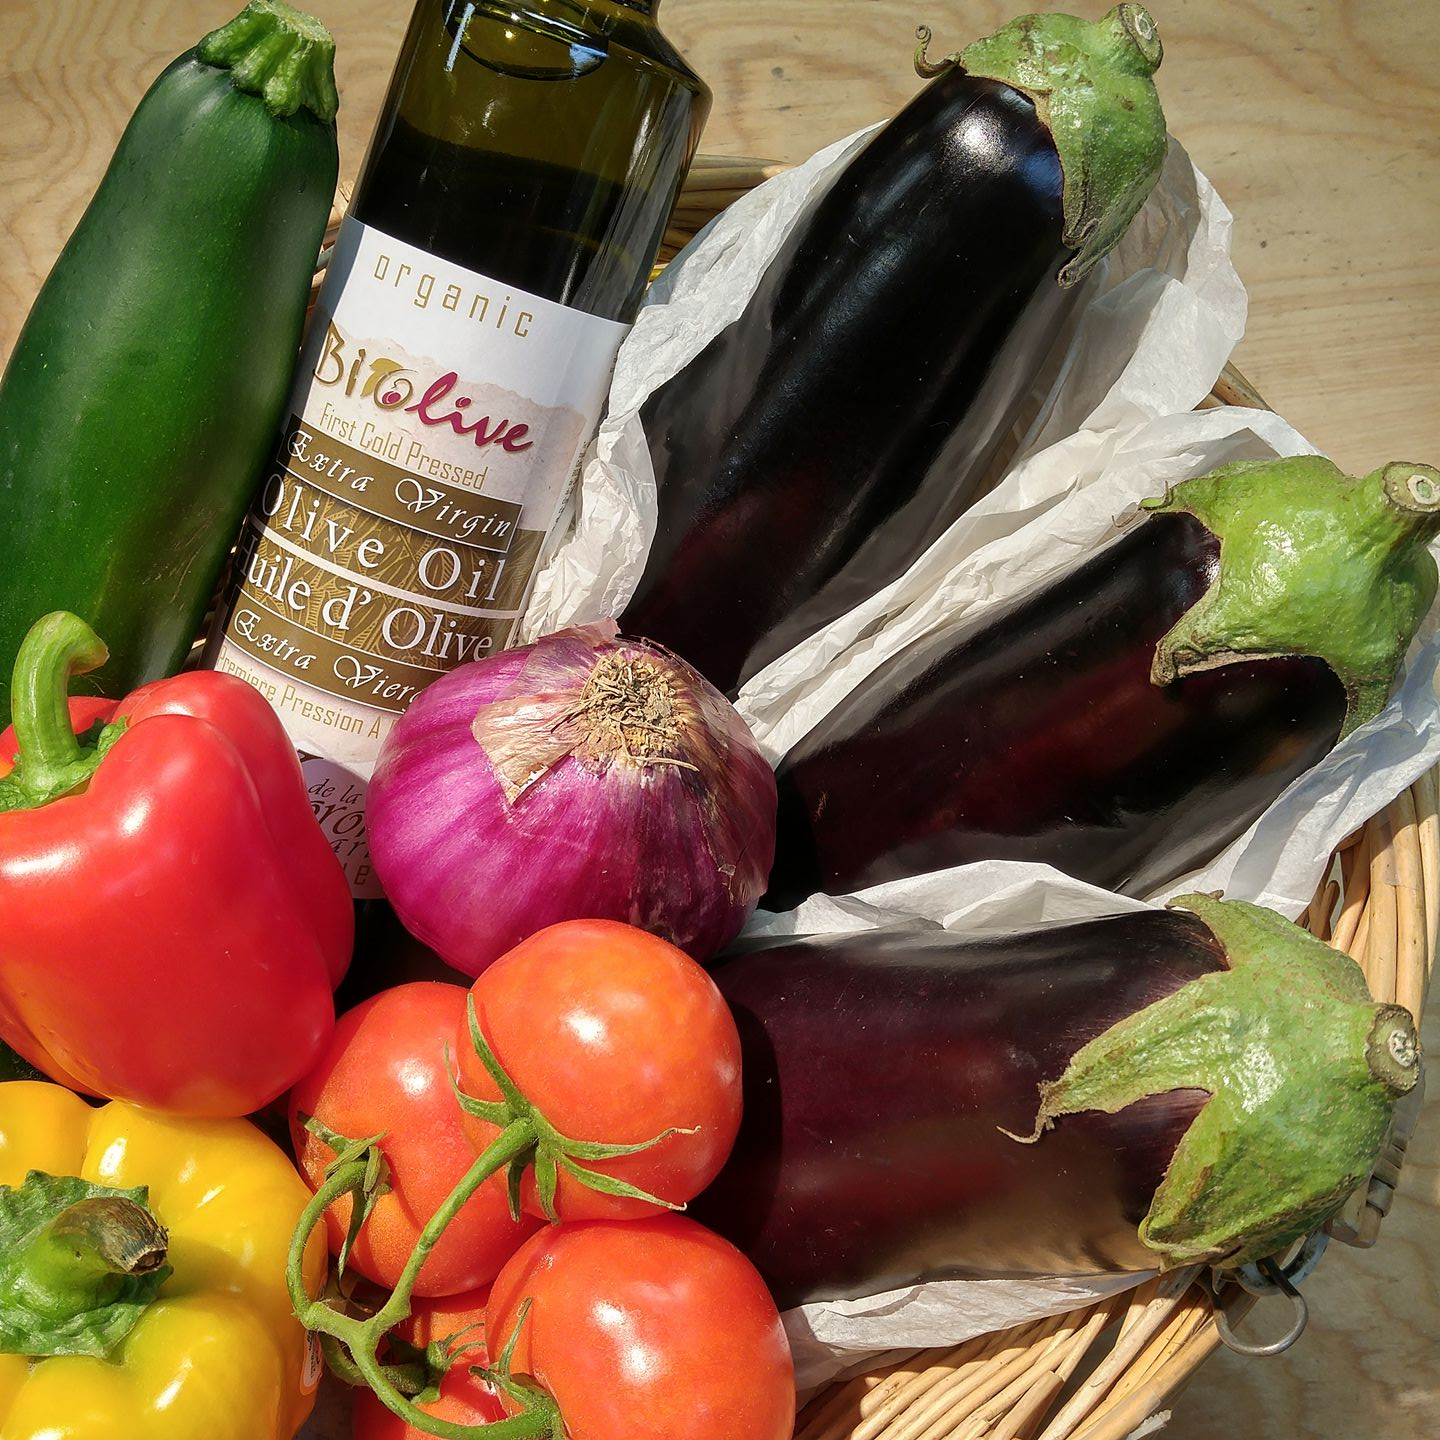 https://0901.nccdn.net/4_2/000/000/023/130/oil-produce-aubergine.jpg